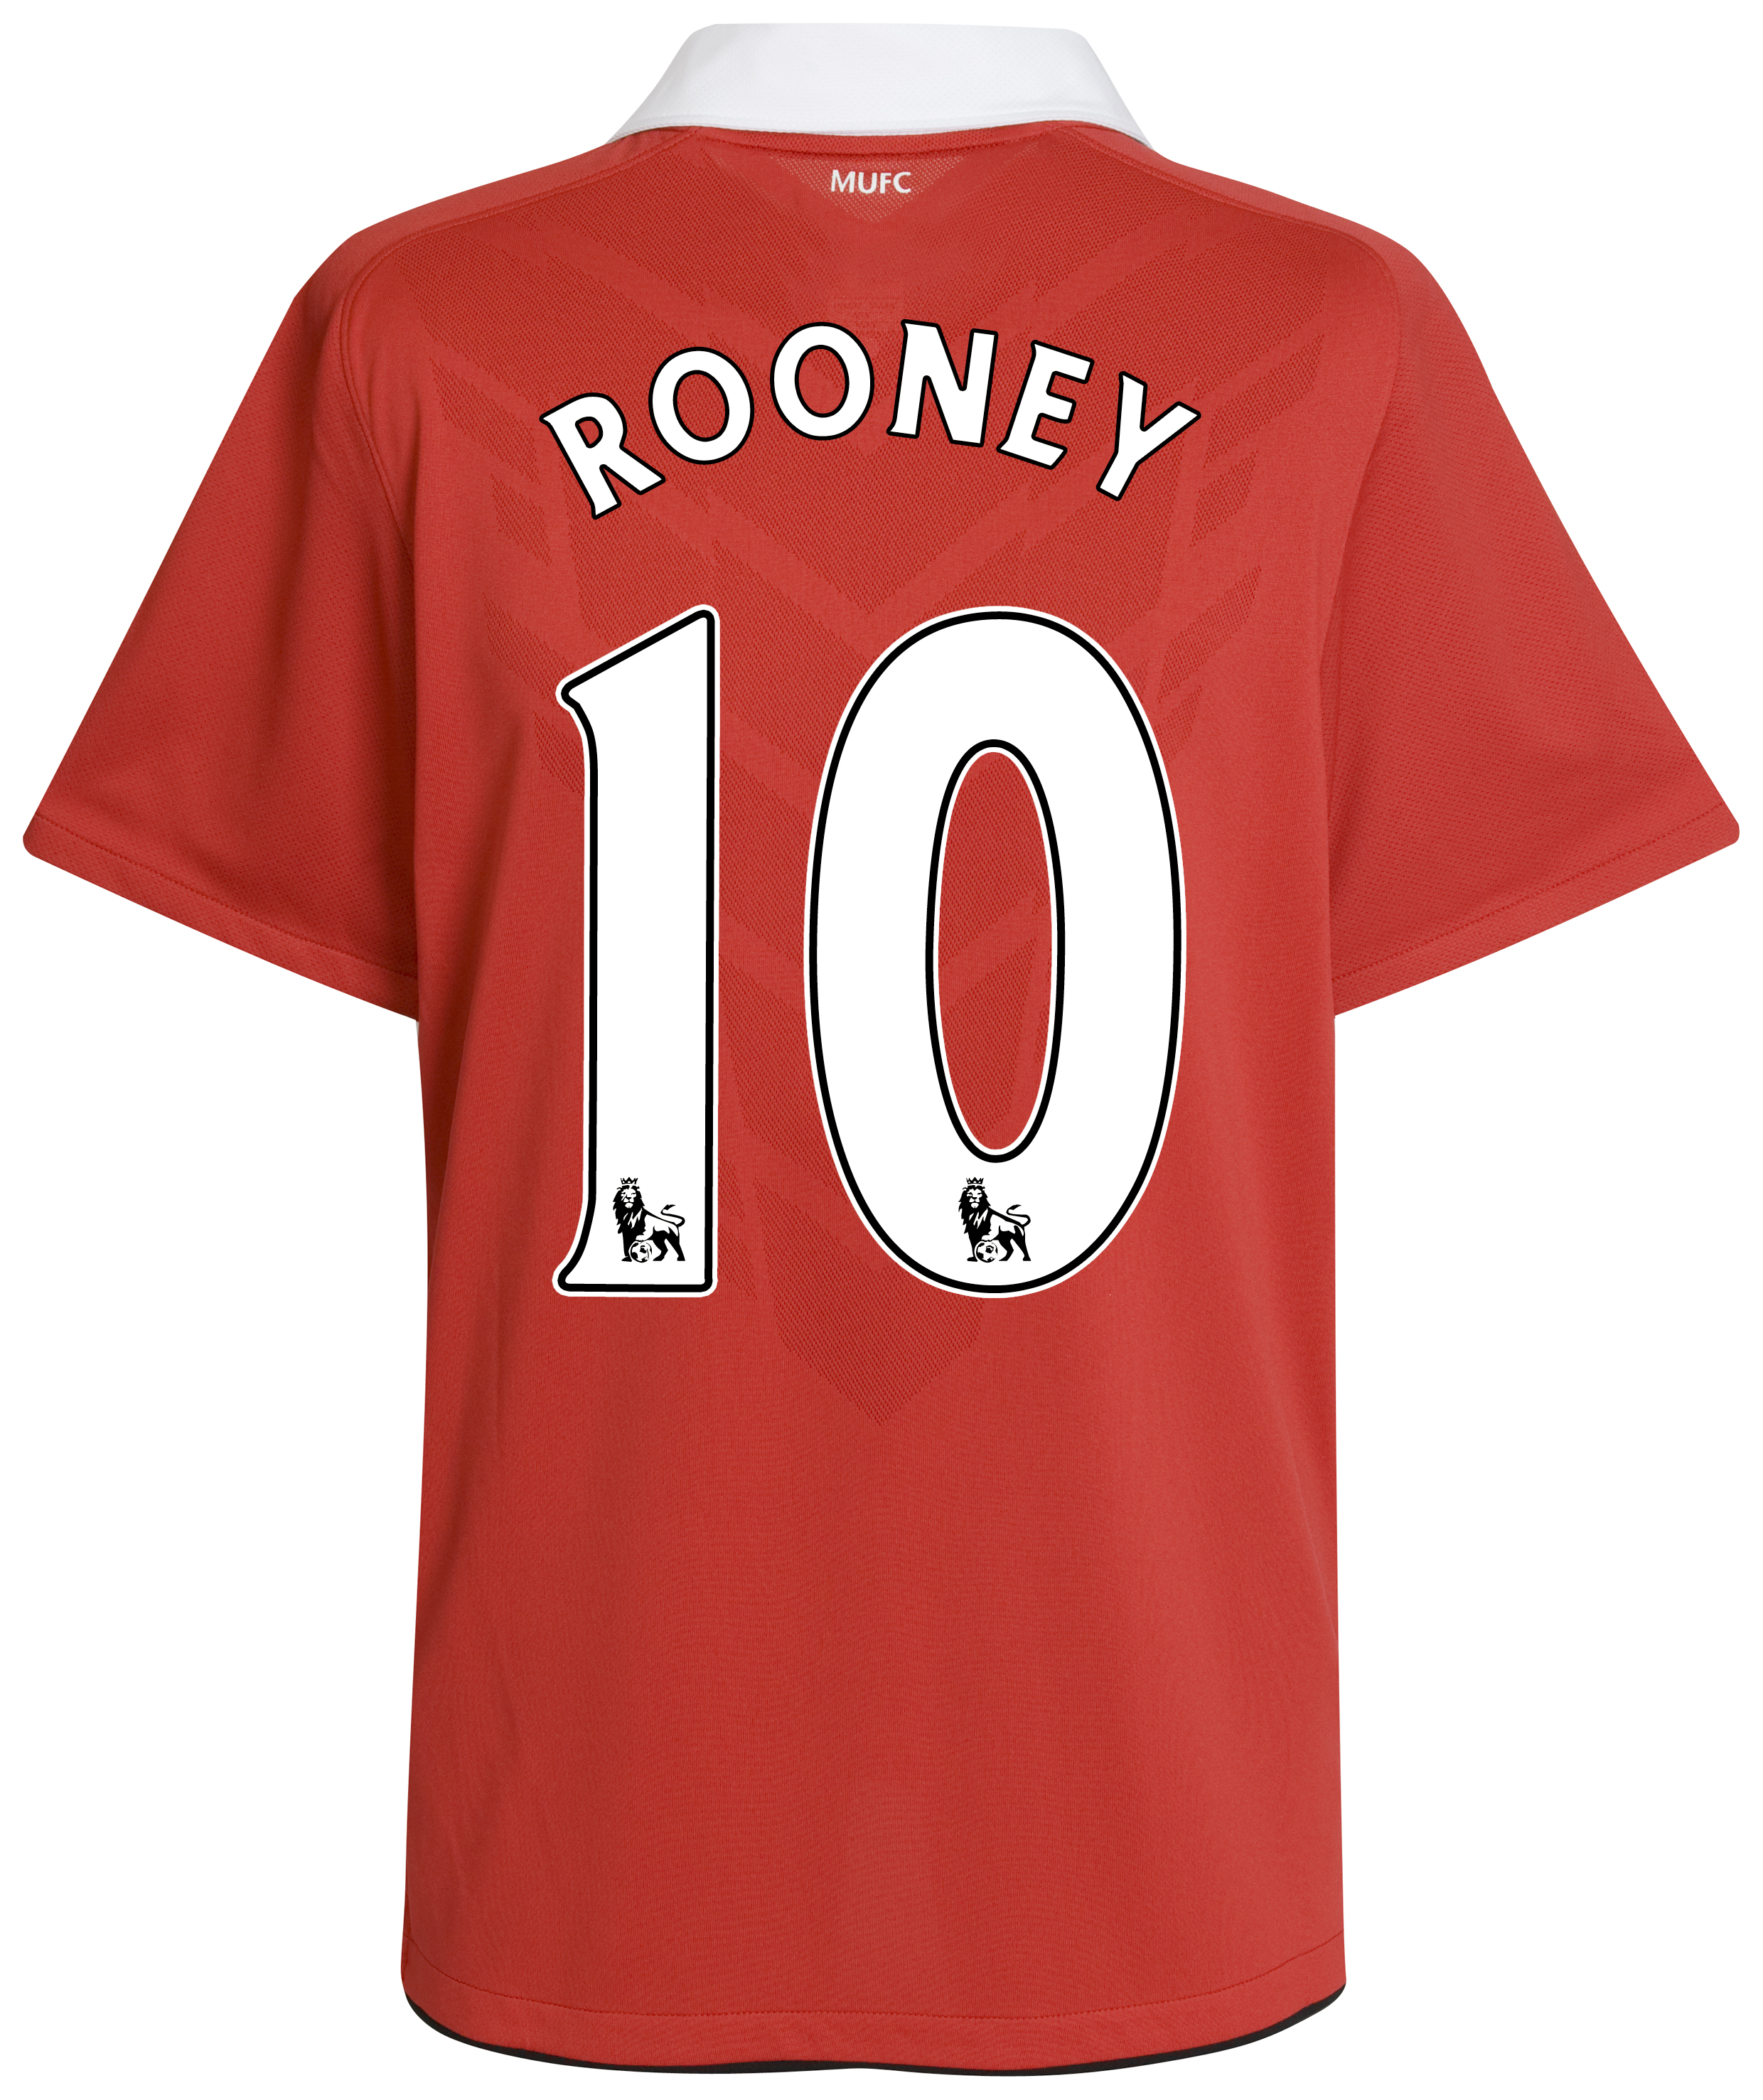 Manchester United Home Shirt 2010/11 with Rooney 10 printing